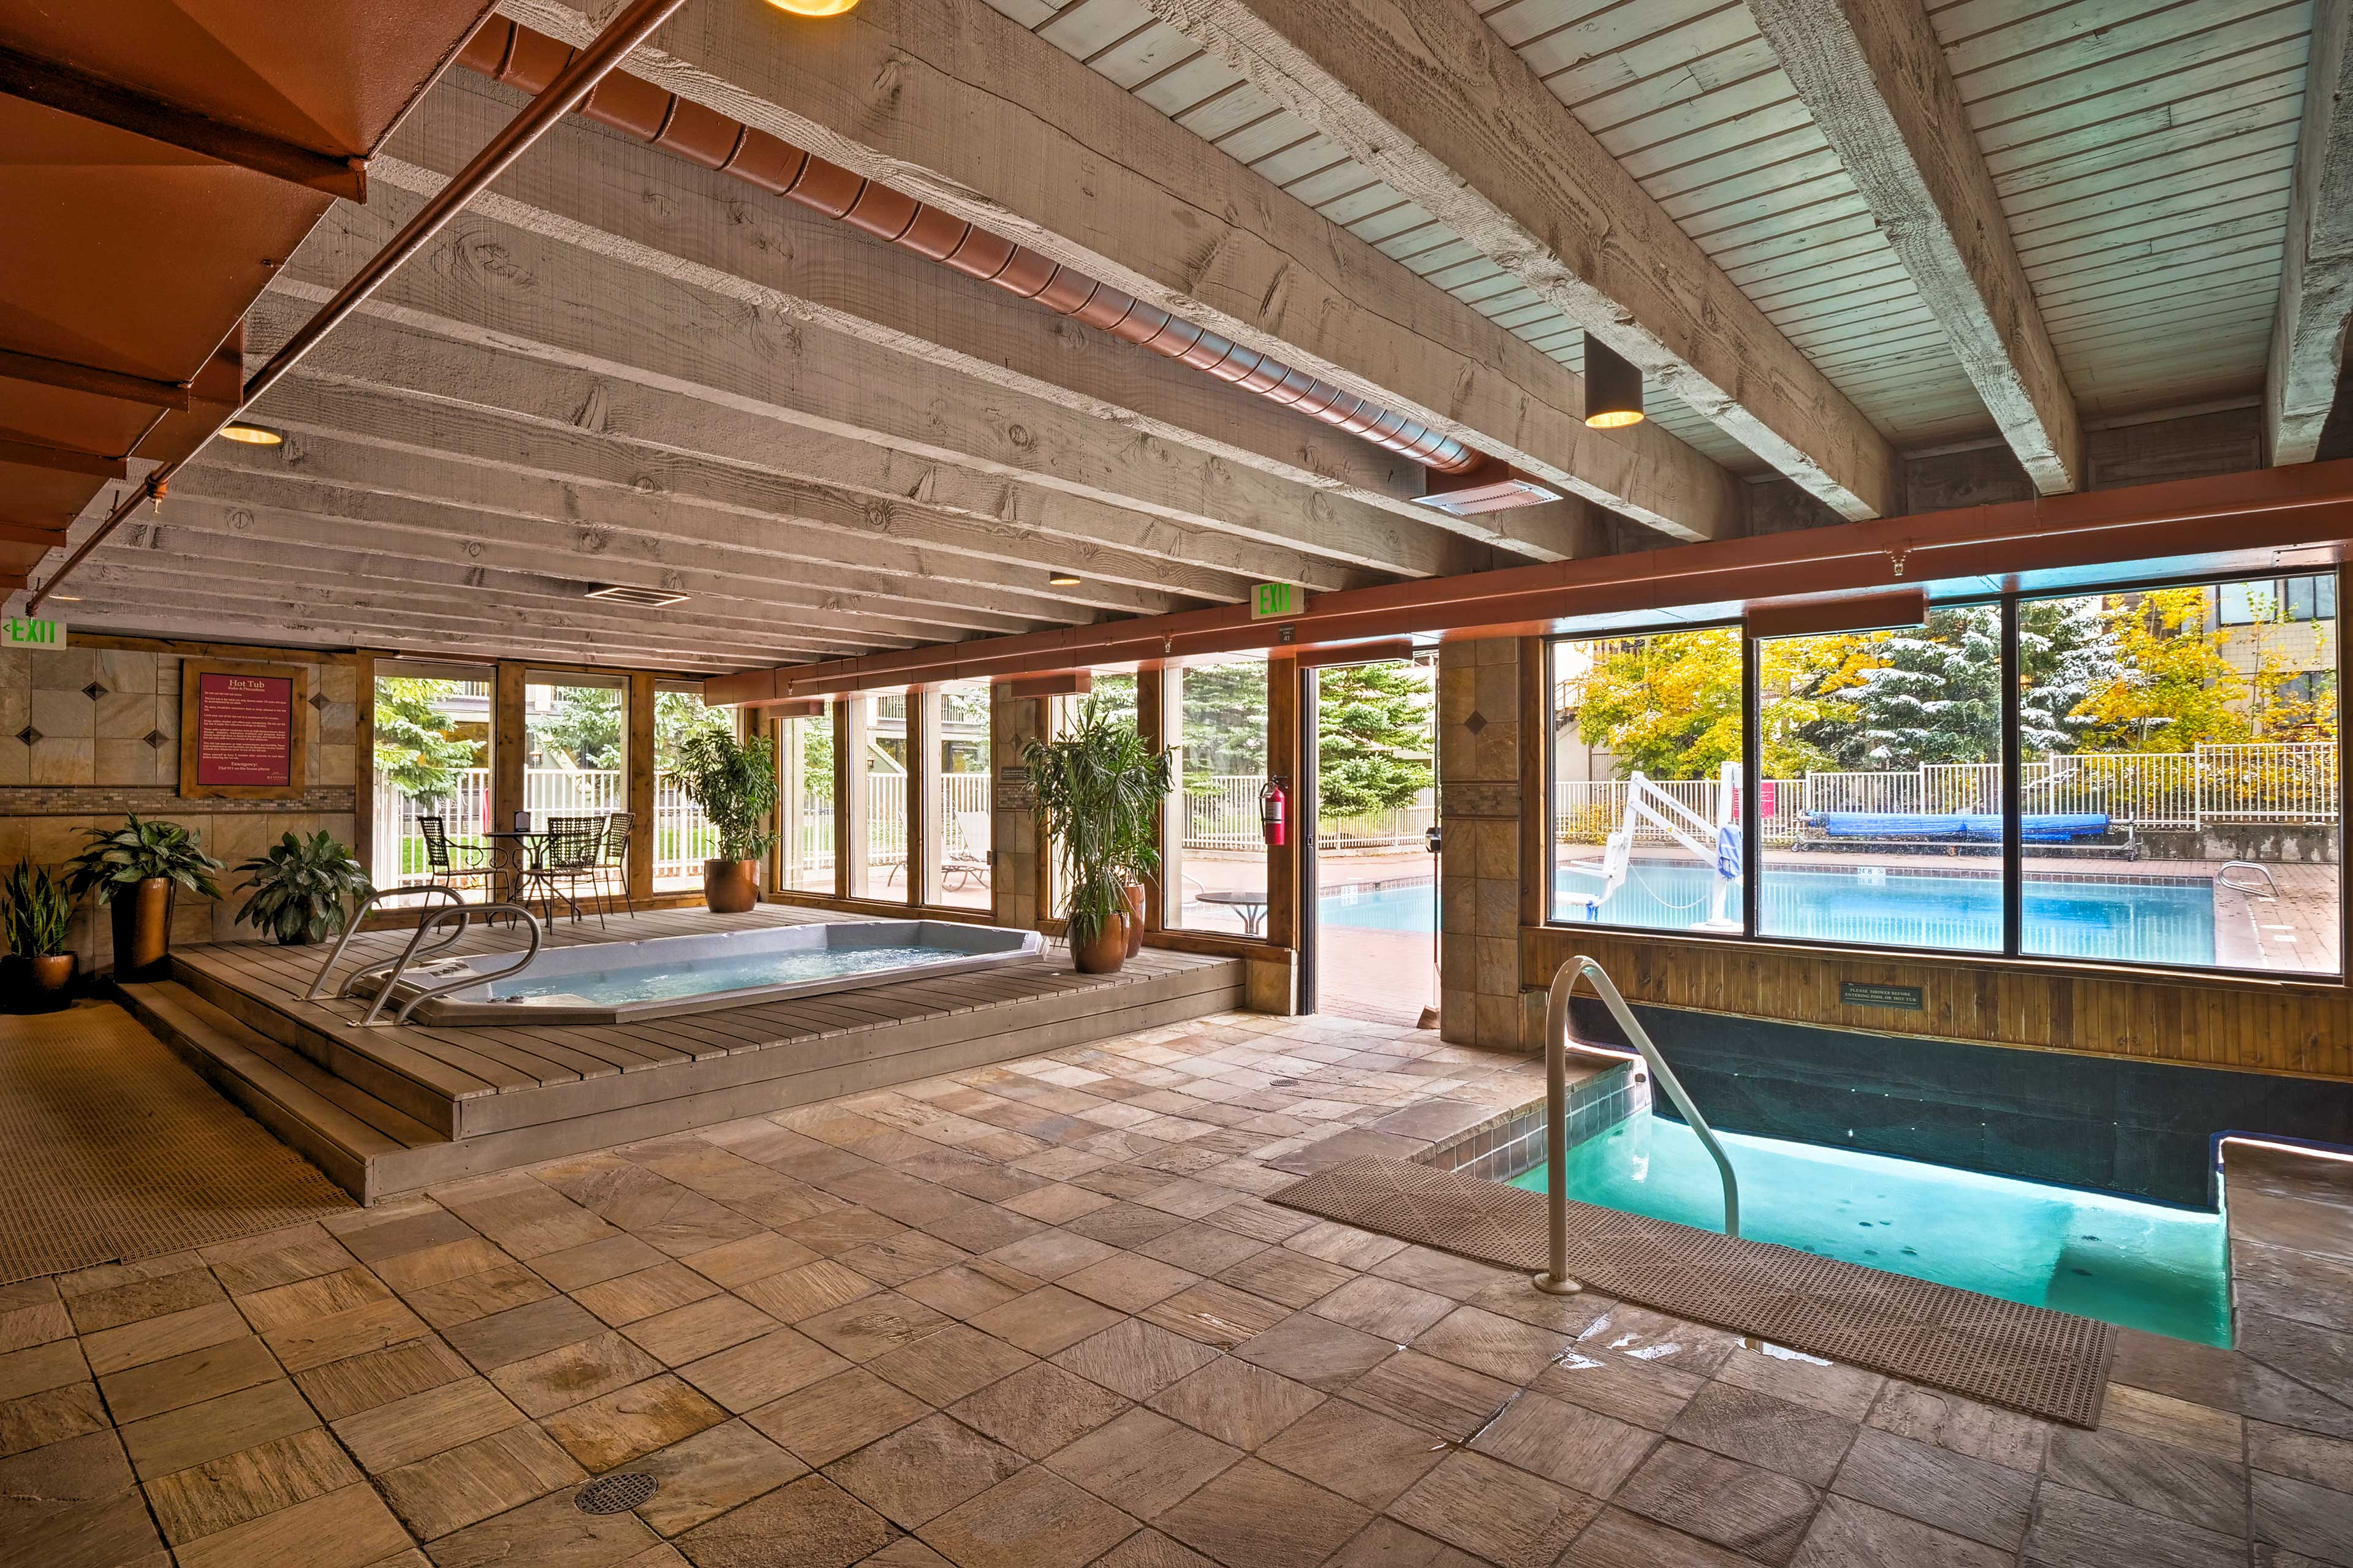 Spend those lazy days relaxing by the pool and hot tub.